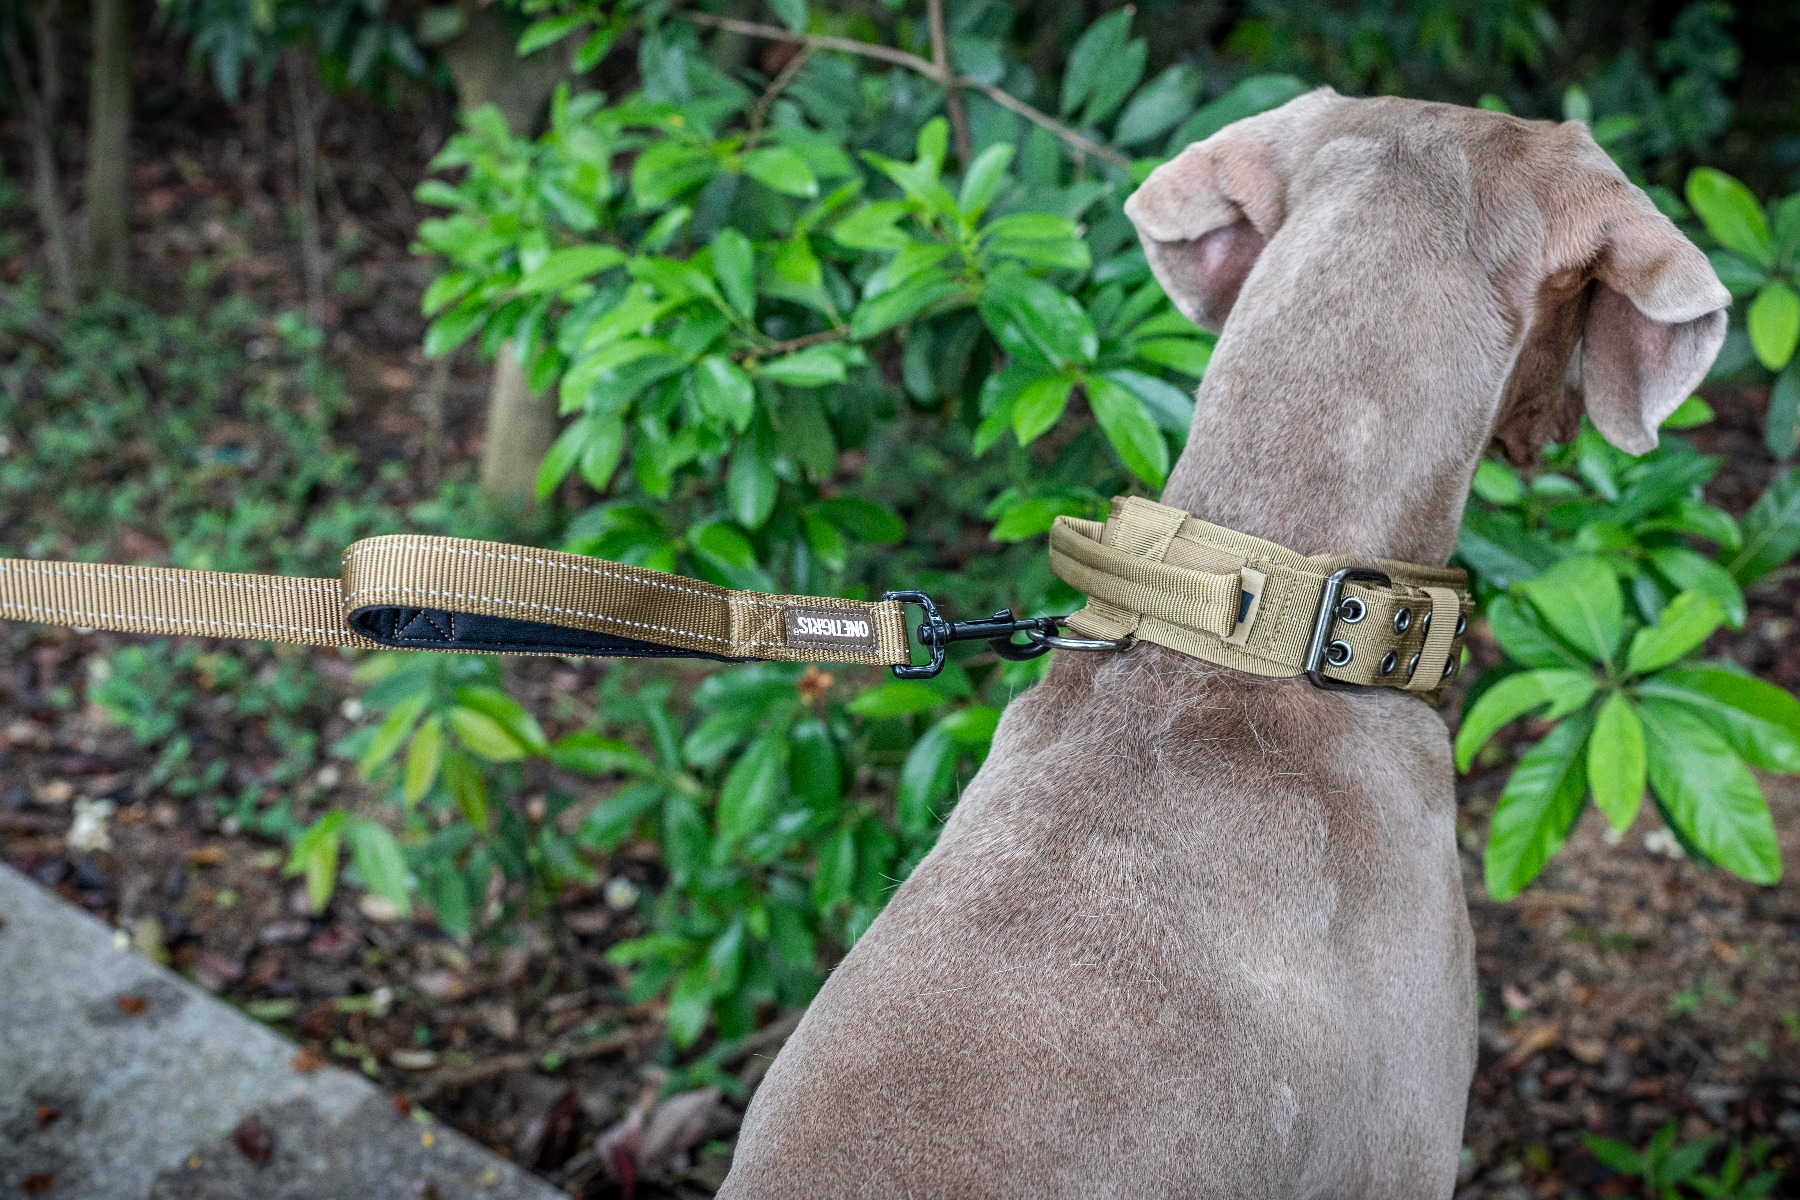 OneTigris Dog Leash 16 multilayered nylon webbing construction Padded top handle and front grab handle Light reflective stitches